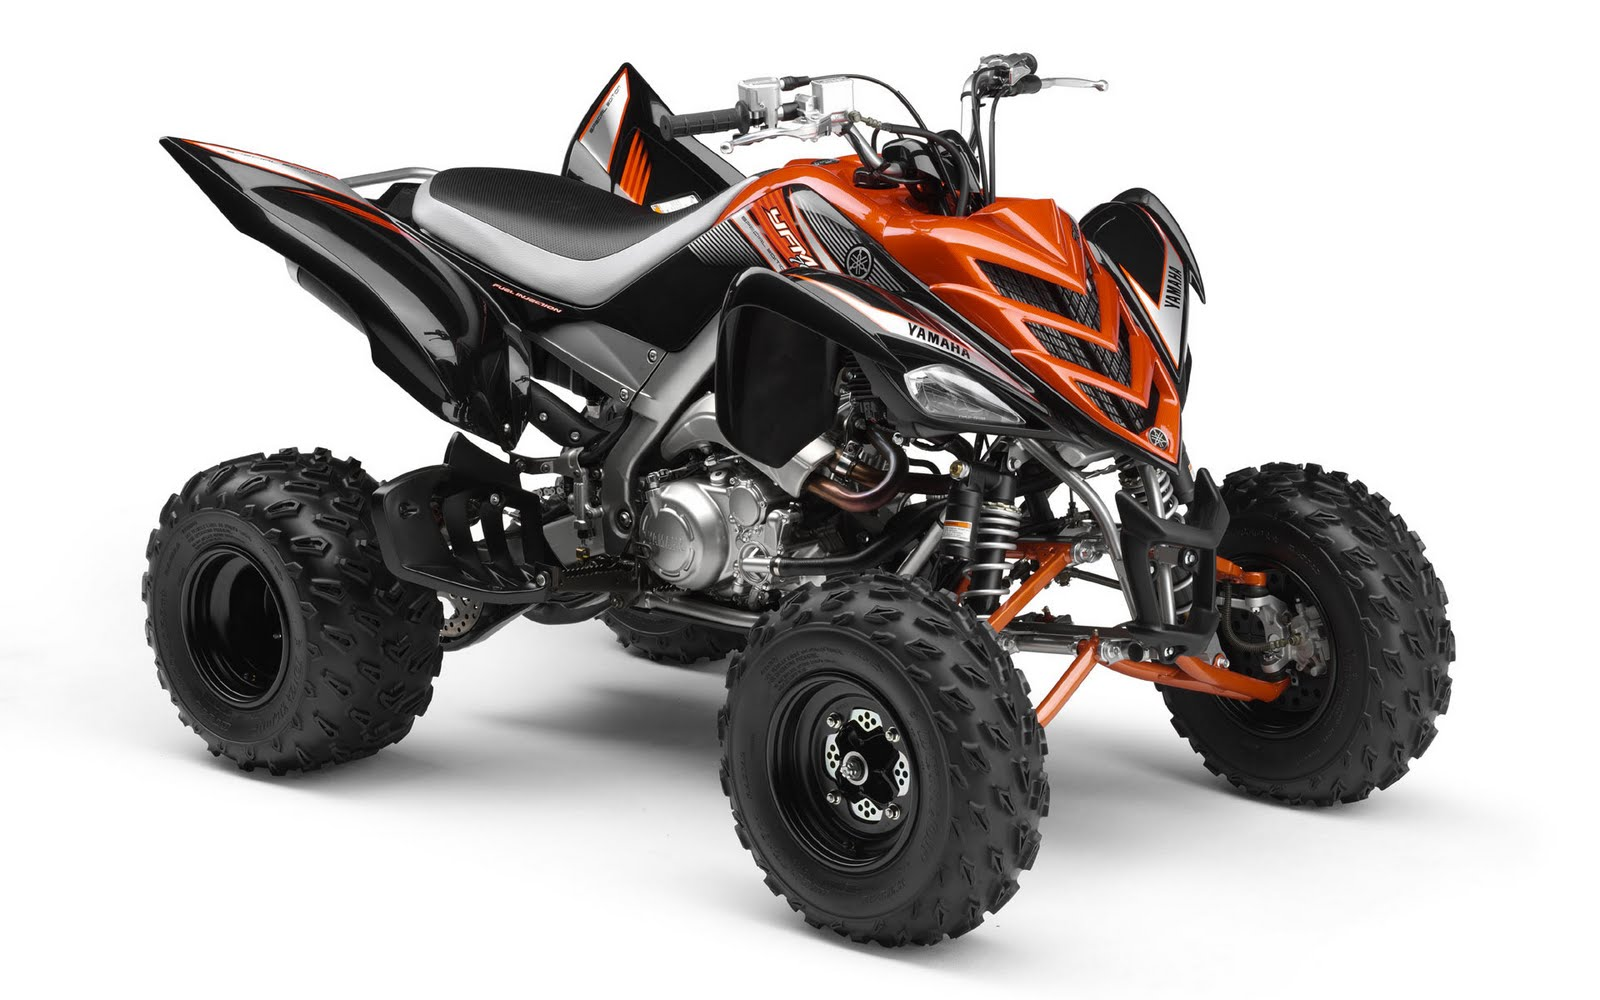 Yamaha ATV wallpapers 1600x1000